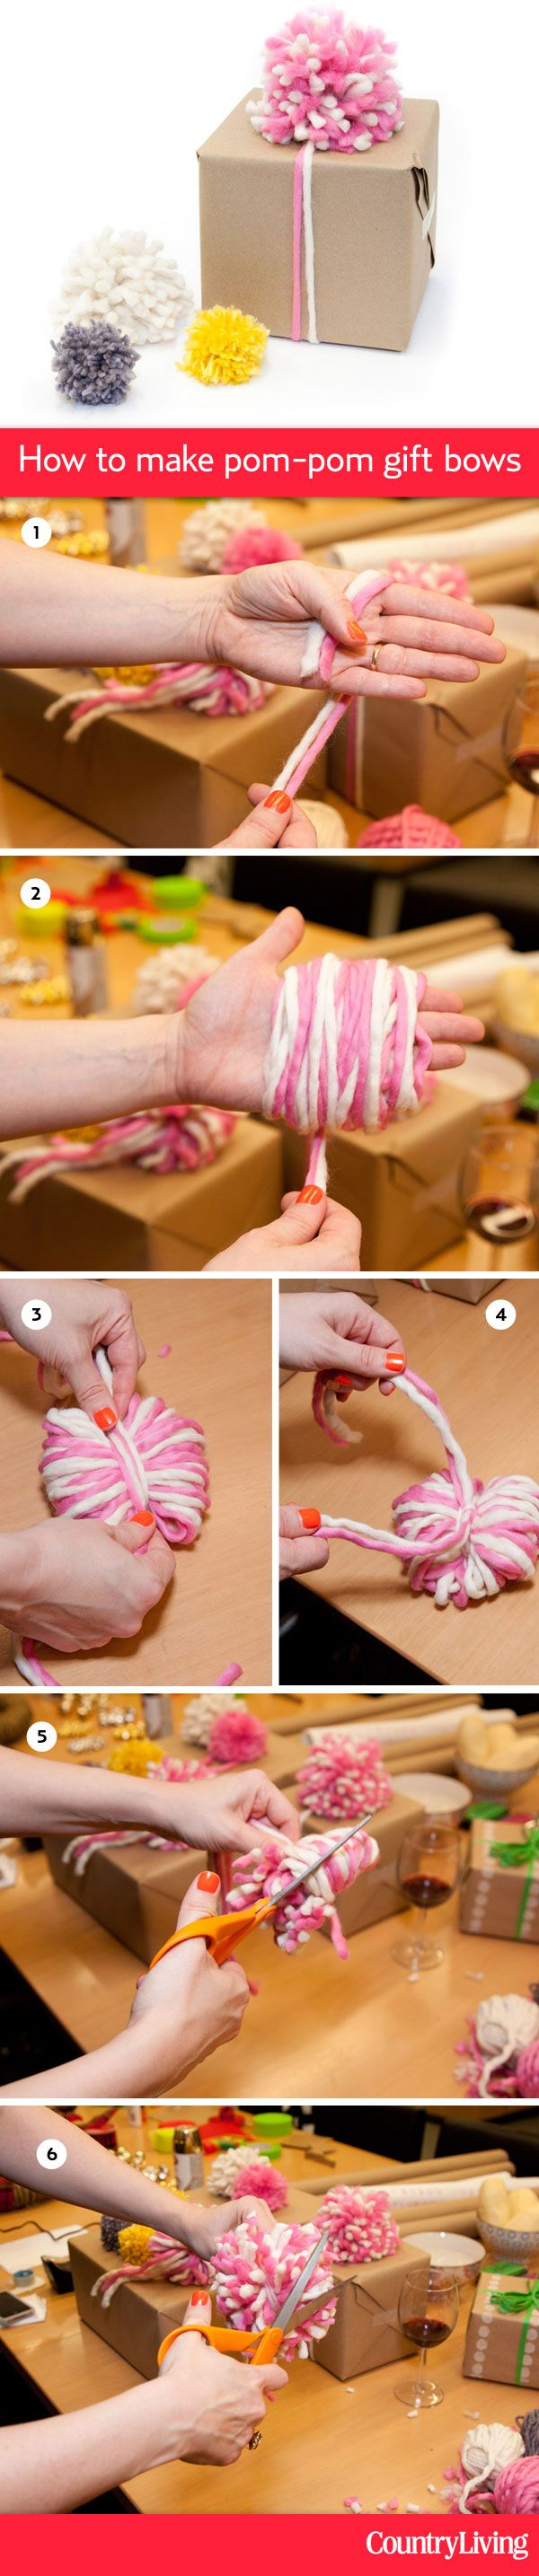 @Brett Johnson Bara shows us how to make fun pom-pom gift bows out of yarn: http://www.countryliving.com/crafts/how-to-make-pom-pom-gift-bows     #pinspirationparty